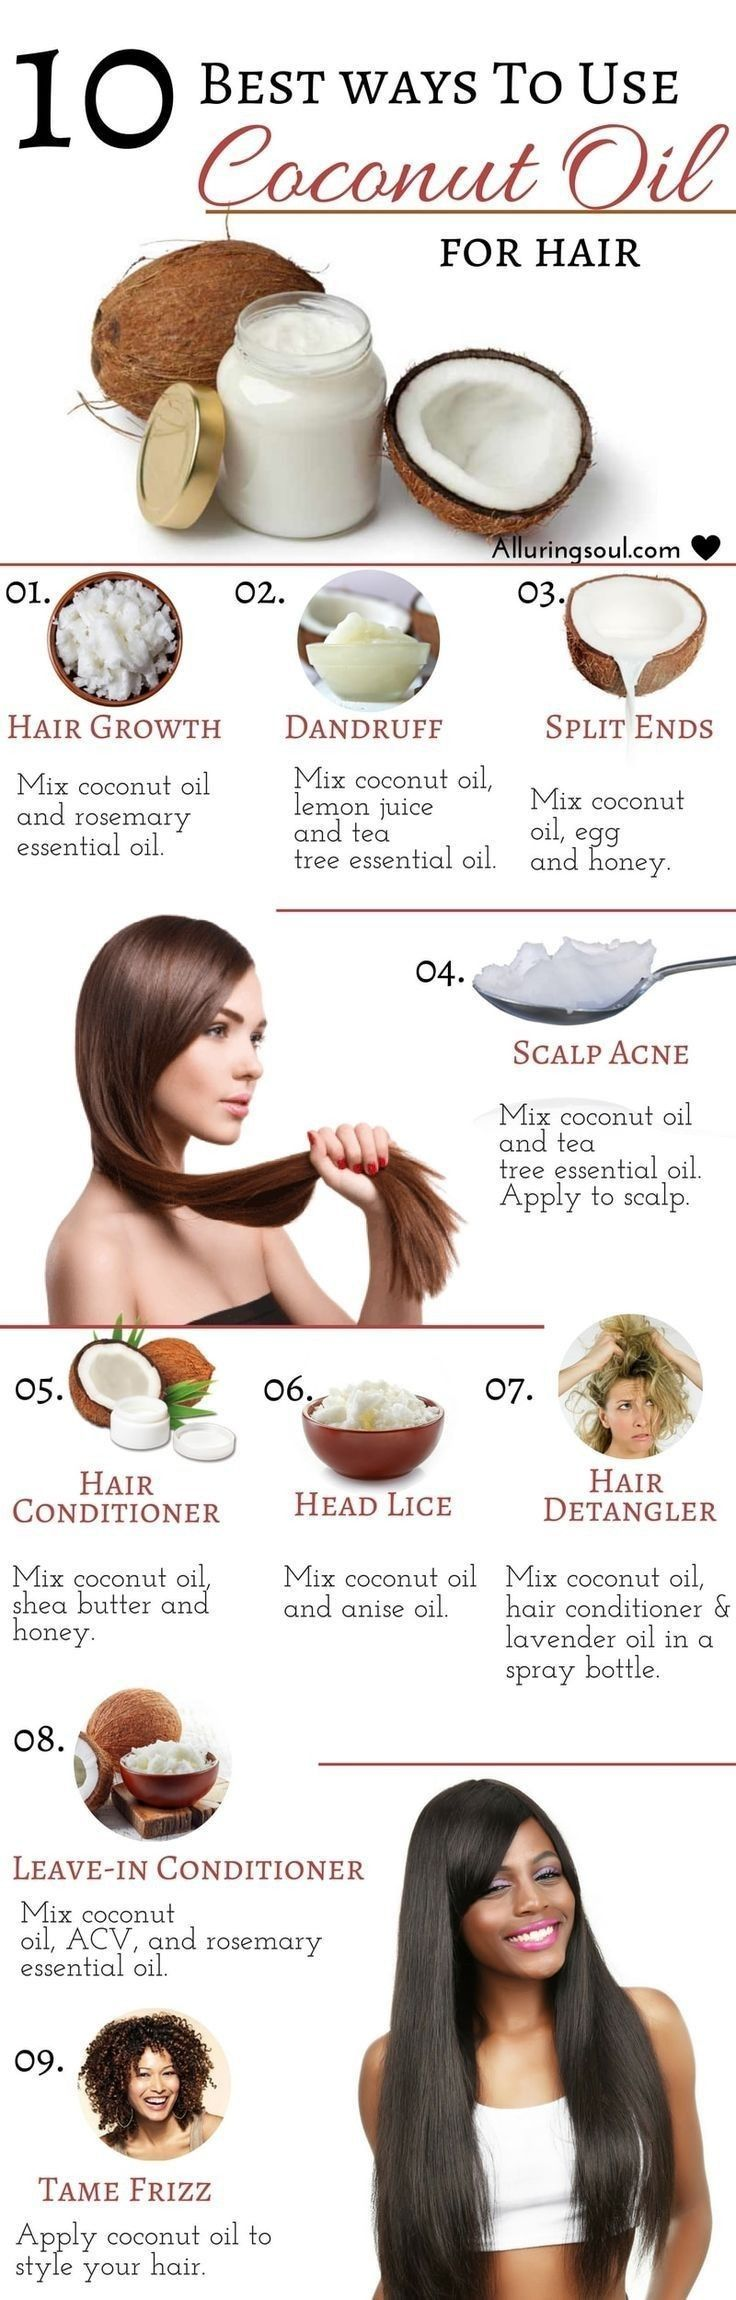 Diy Hair Masks And Face Masks 2018 Coconut Oil For Your